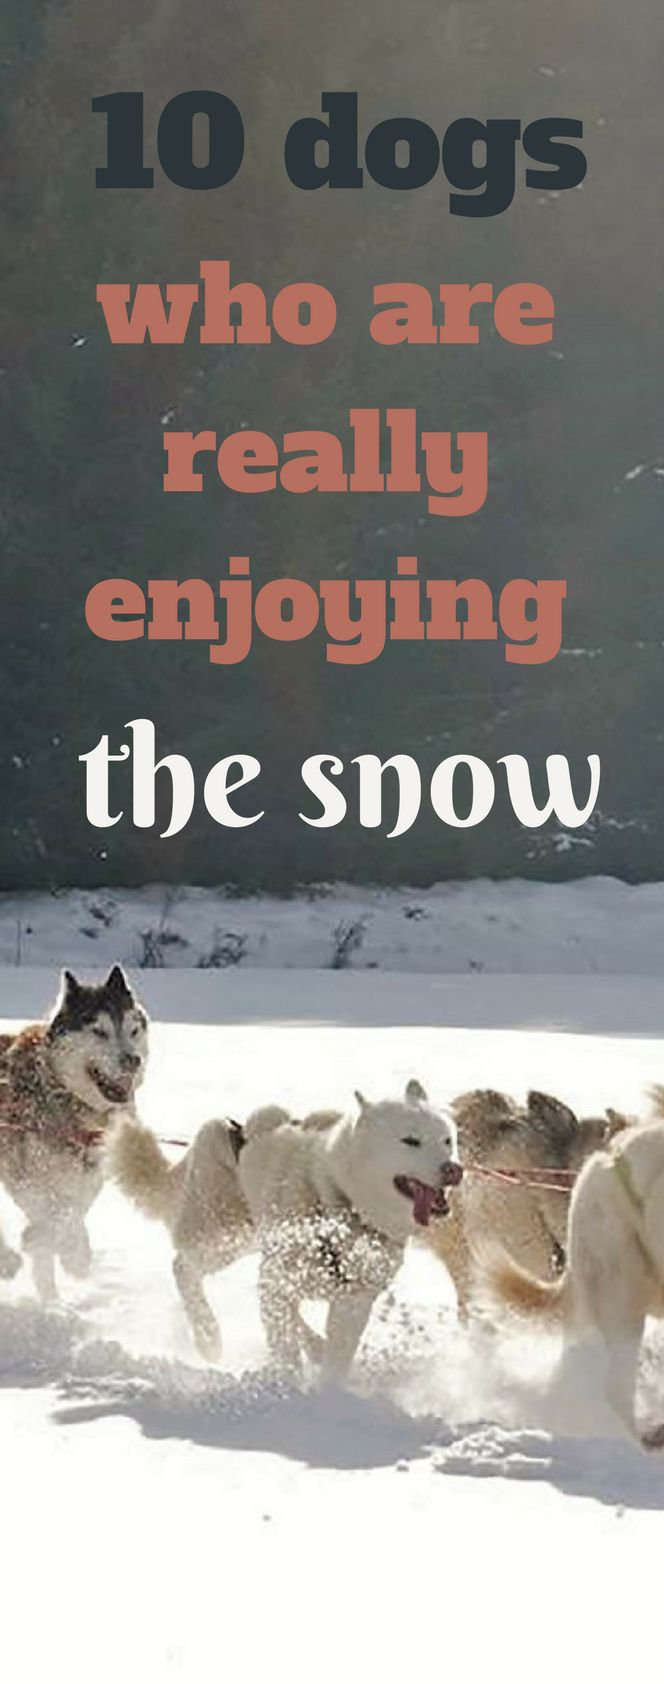 10 dogs who are really enjoying the snow 2018